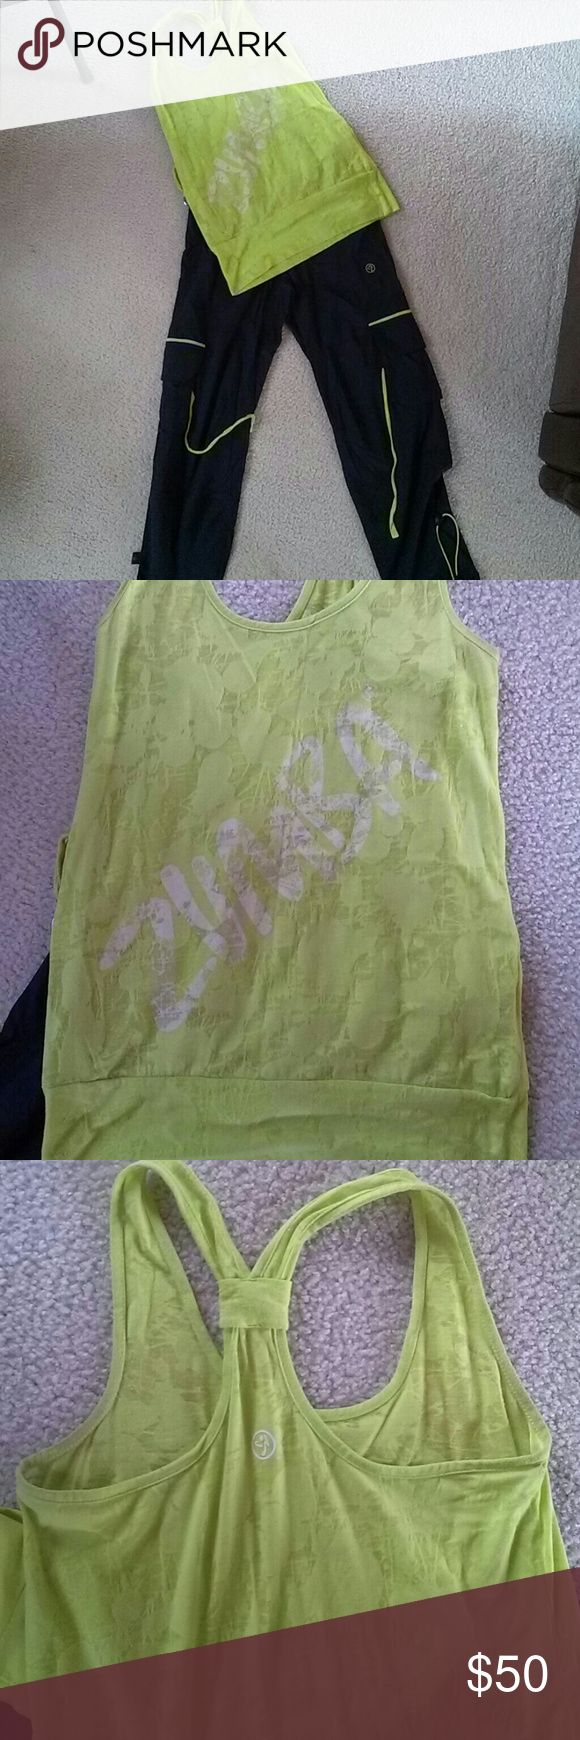 Lime green and black Zumba outfit Lime green halter Zumba top with matching black and lime green cargos. Very comfortable!! Other